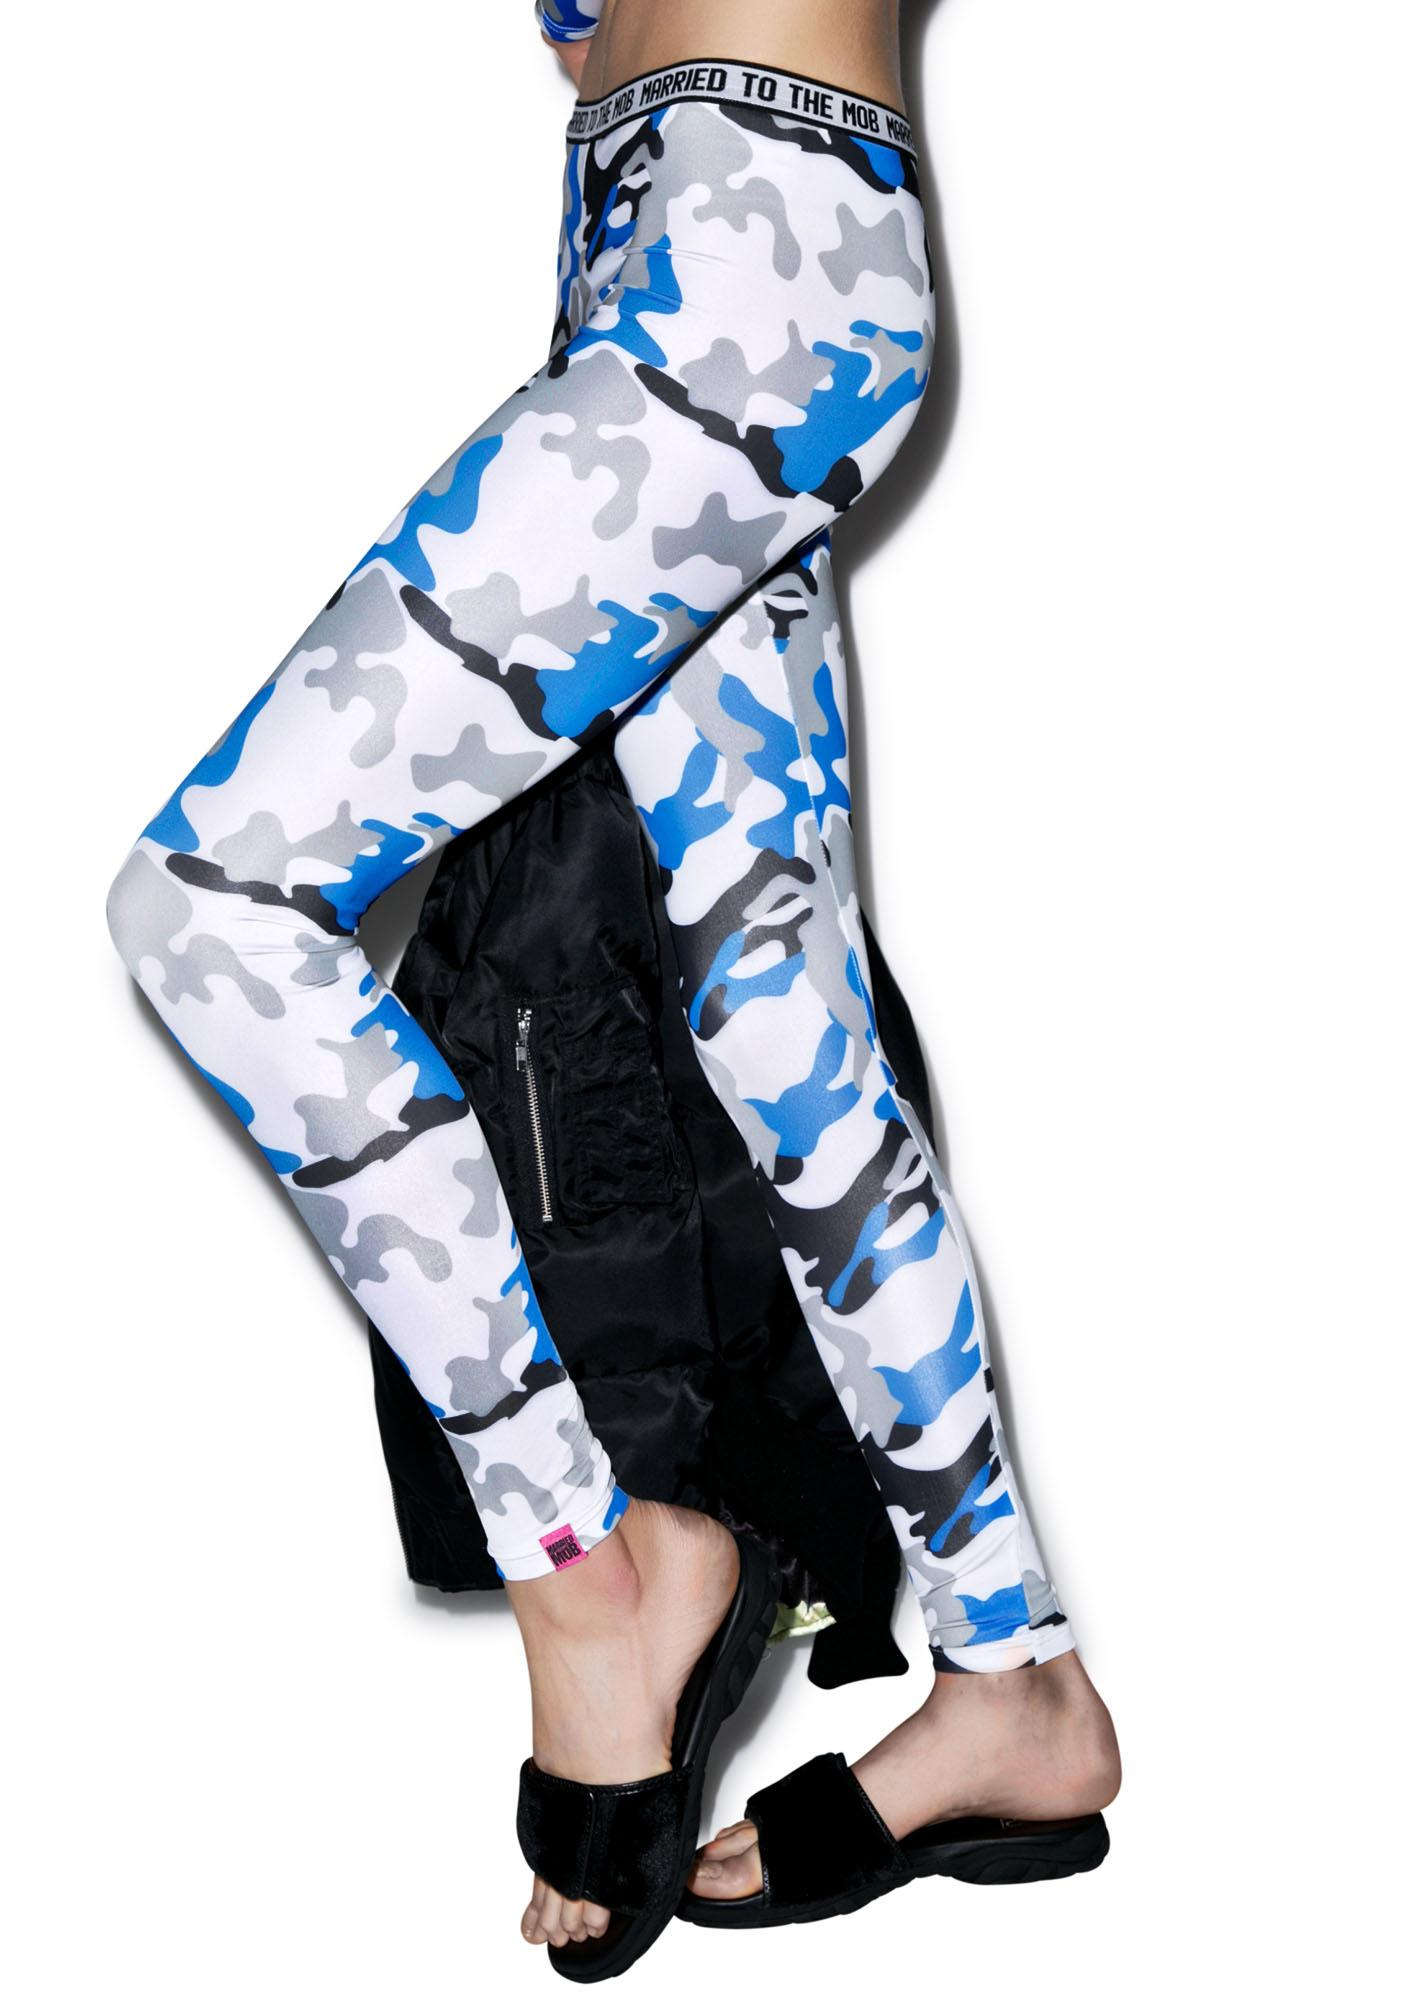 Married to the Mob Worst Enemy Leggings